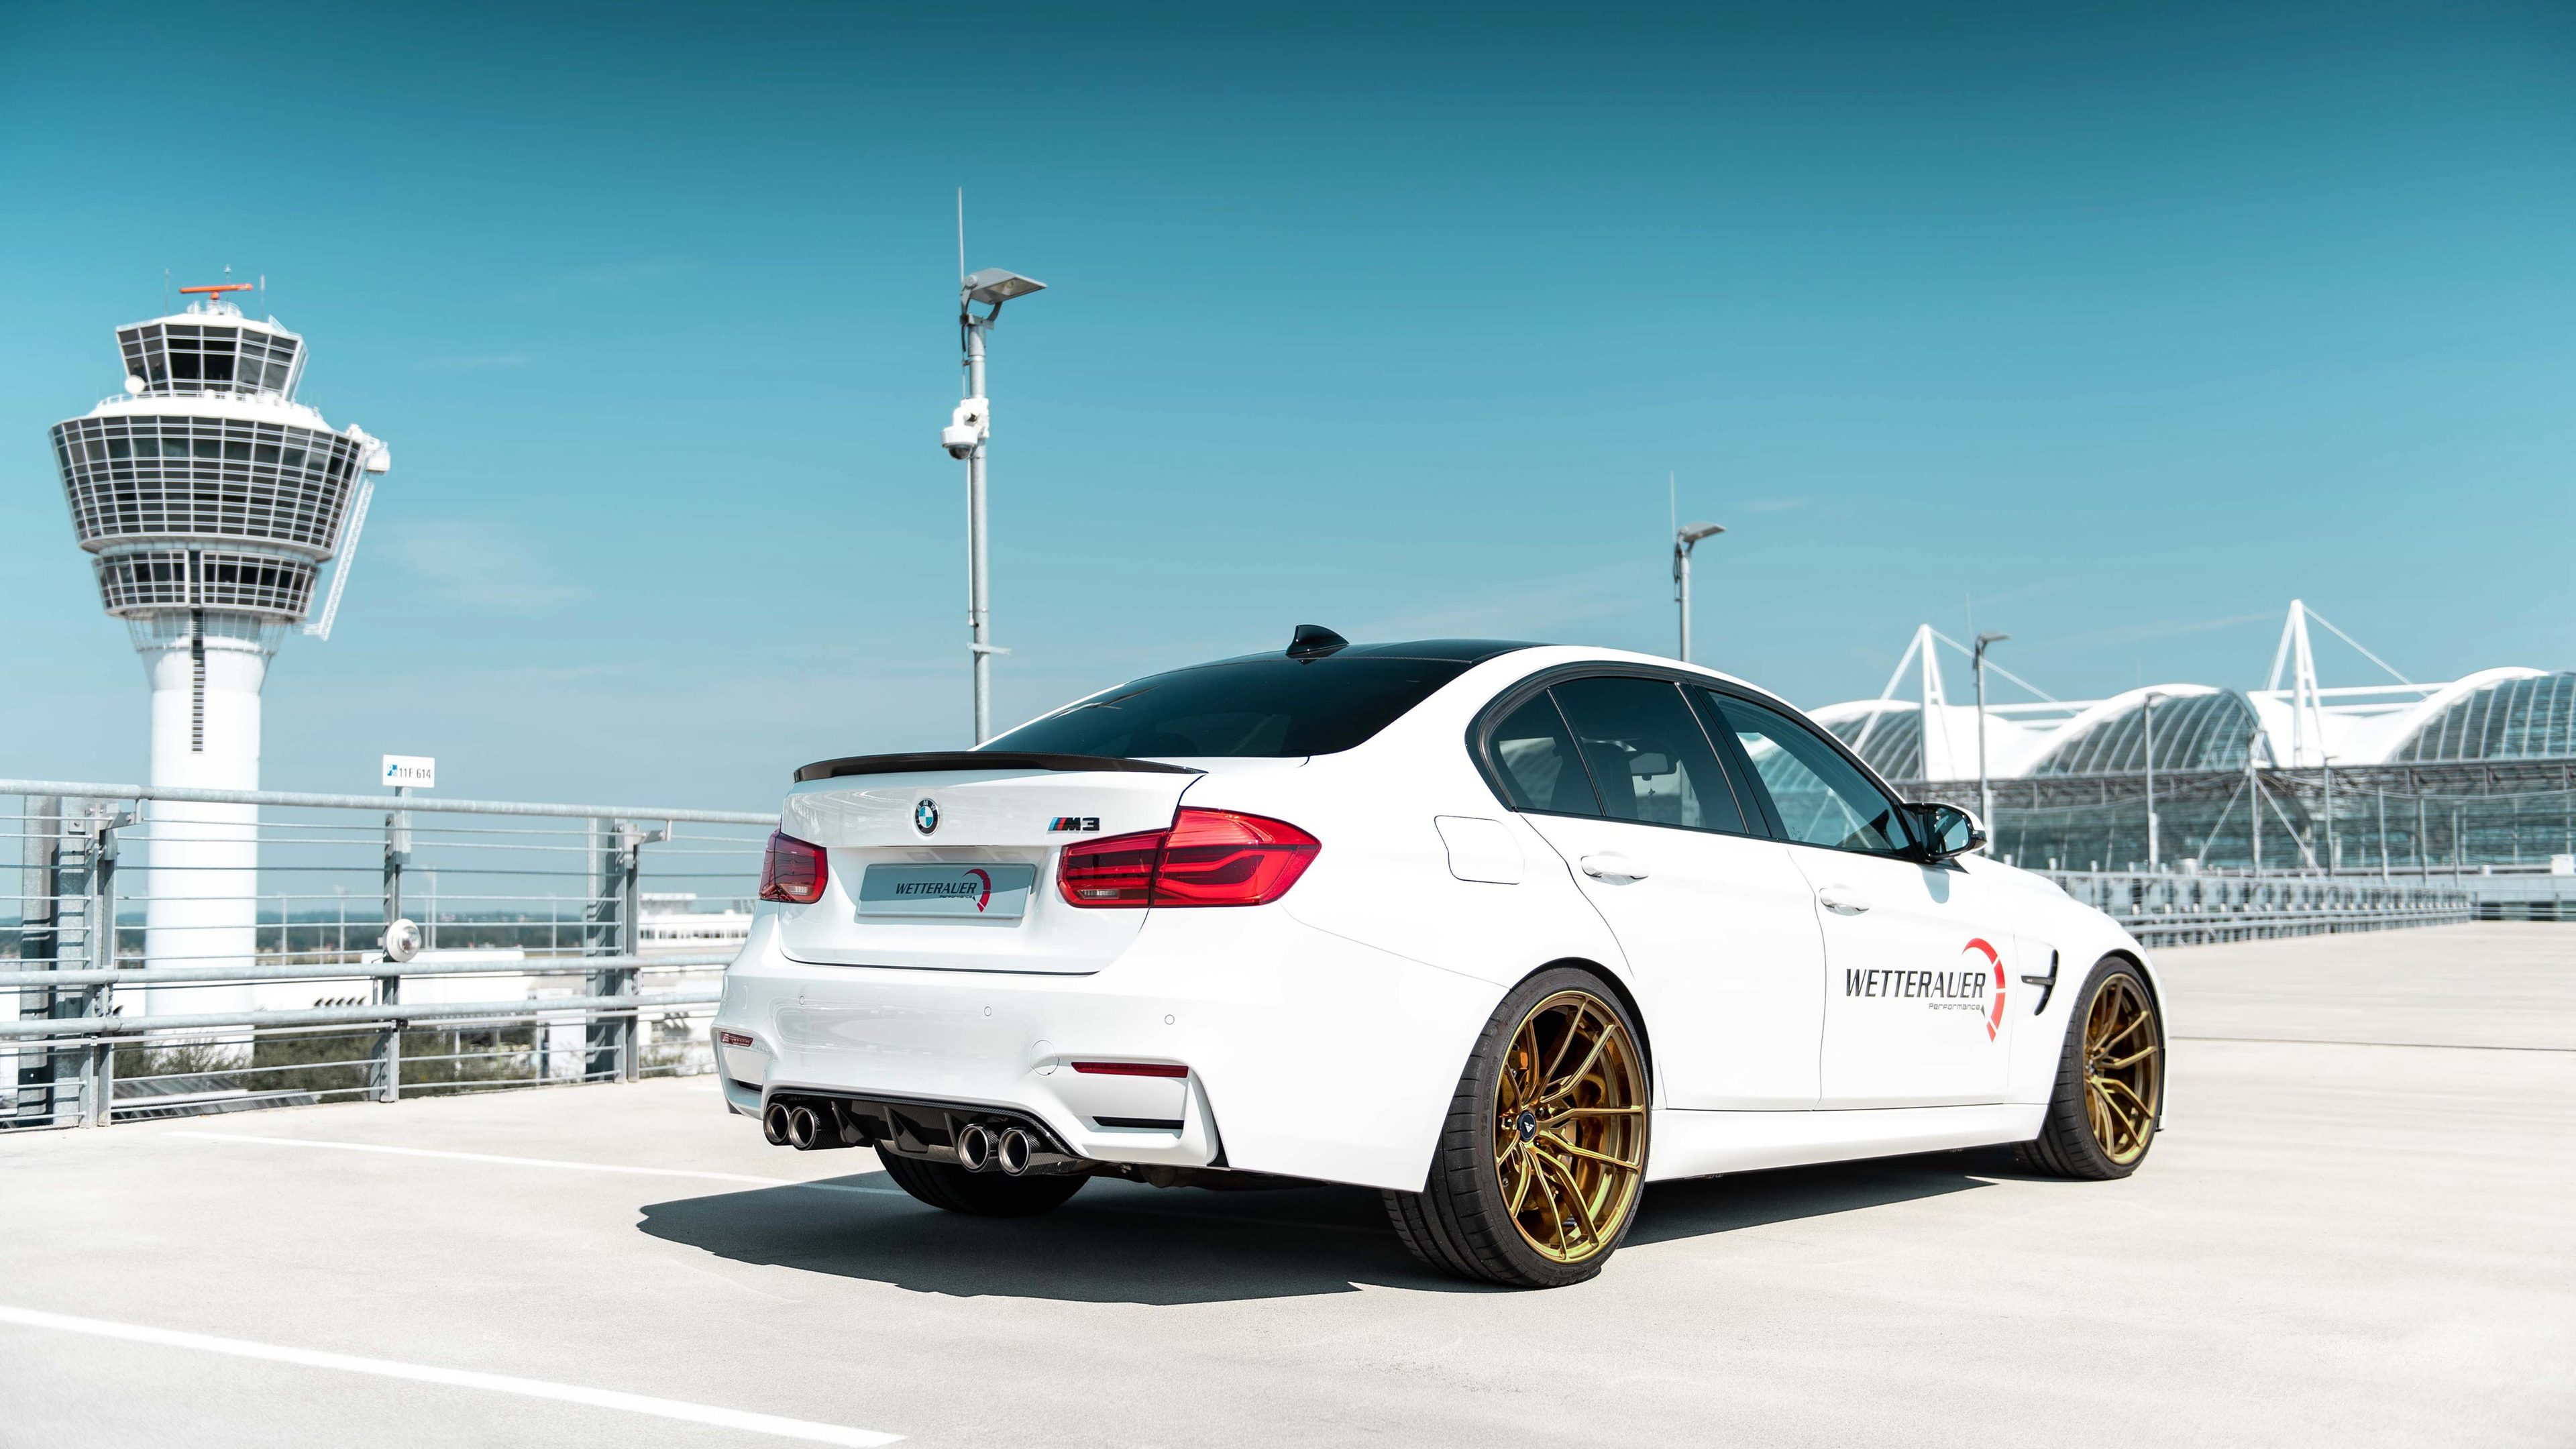 wetterauer performance bmw m3 gts 2018 rear 1539113699 - Wetterauer Performance BMW M3 GTS 2018 Rear - hd-wallpapers, cars wallpapers, bmw wallpapers, bmw m3 wallpapers, 4k-wallpapers, 2018 cars wallpapers